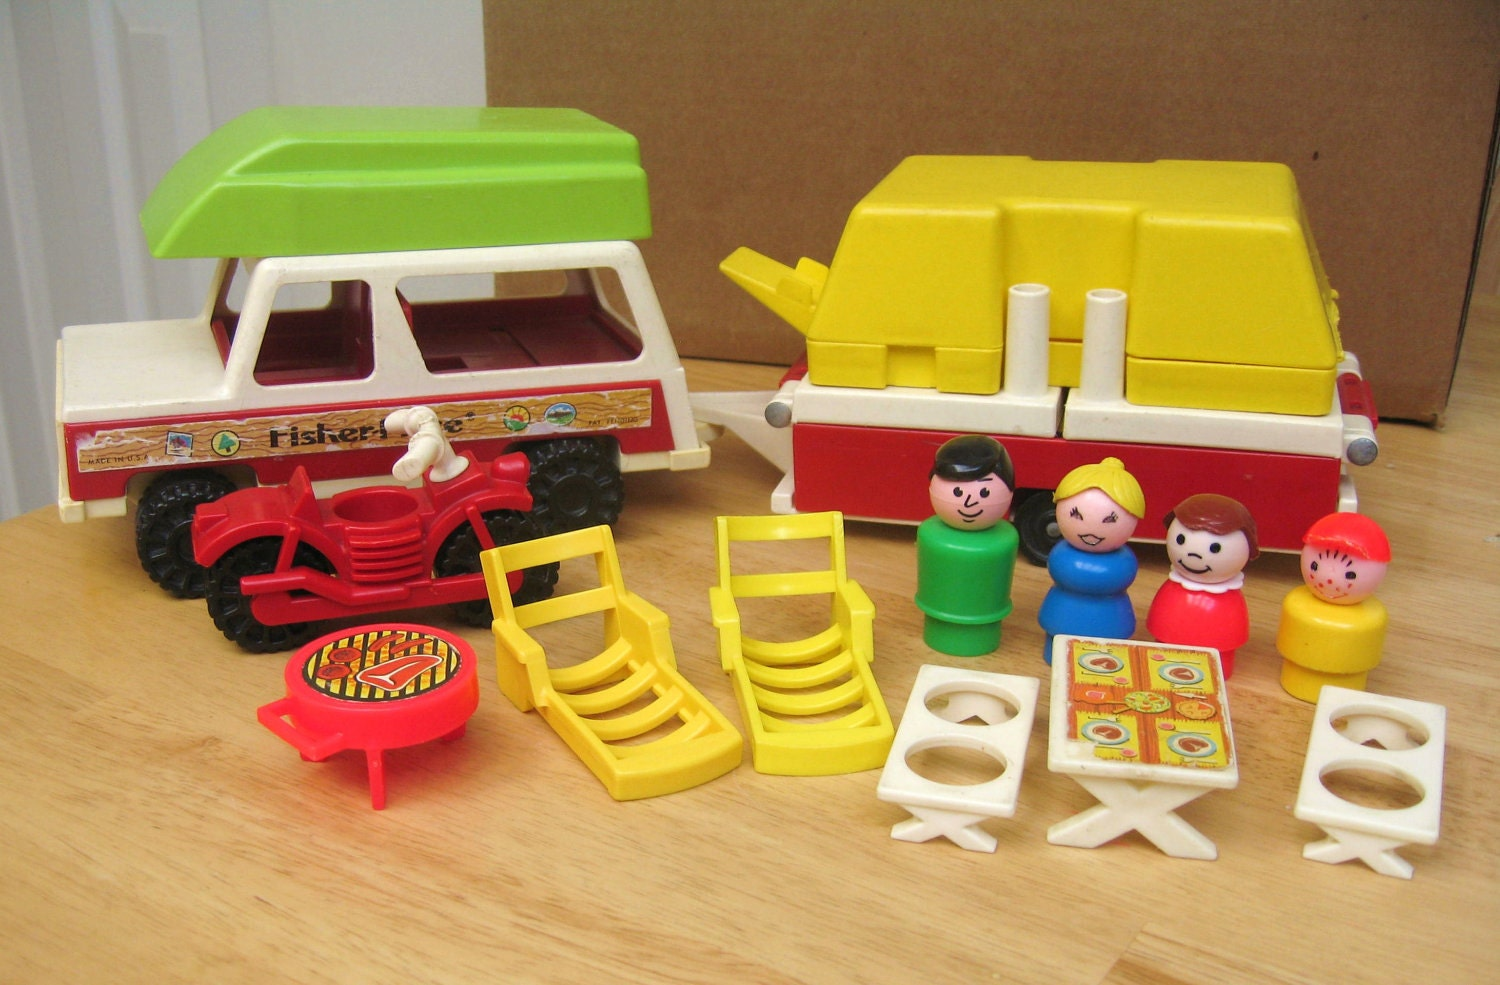 vintage fisher price pop up camper. Black Bedroom Furniture Sets. Home Design Ideas